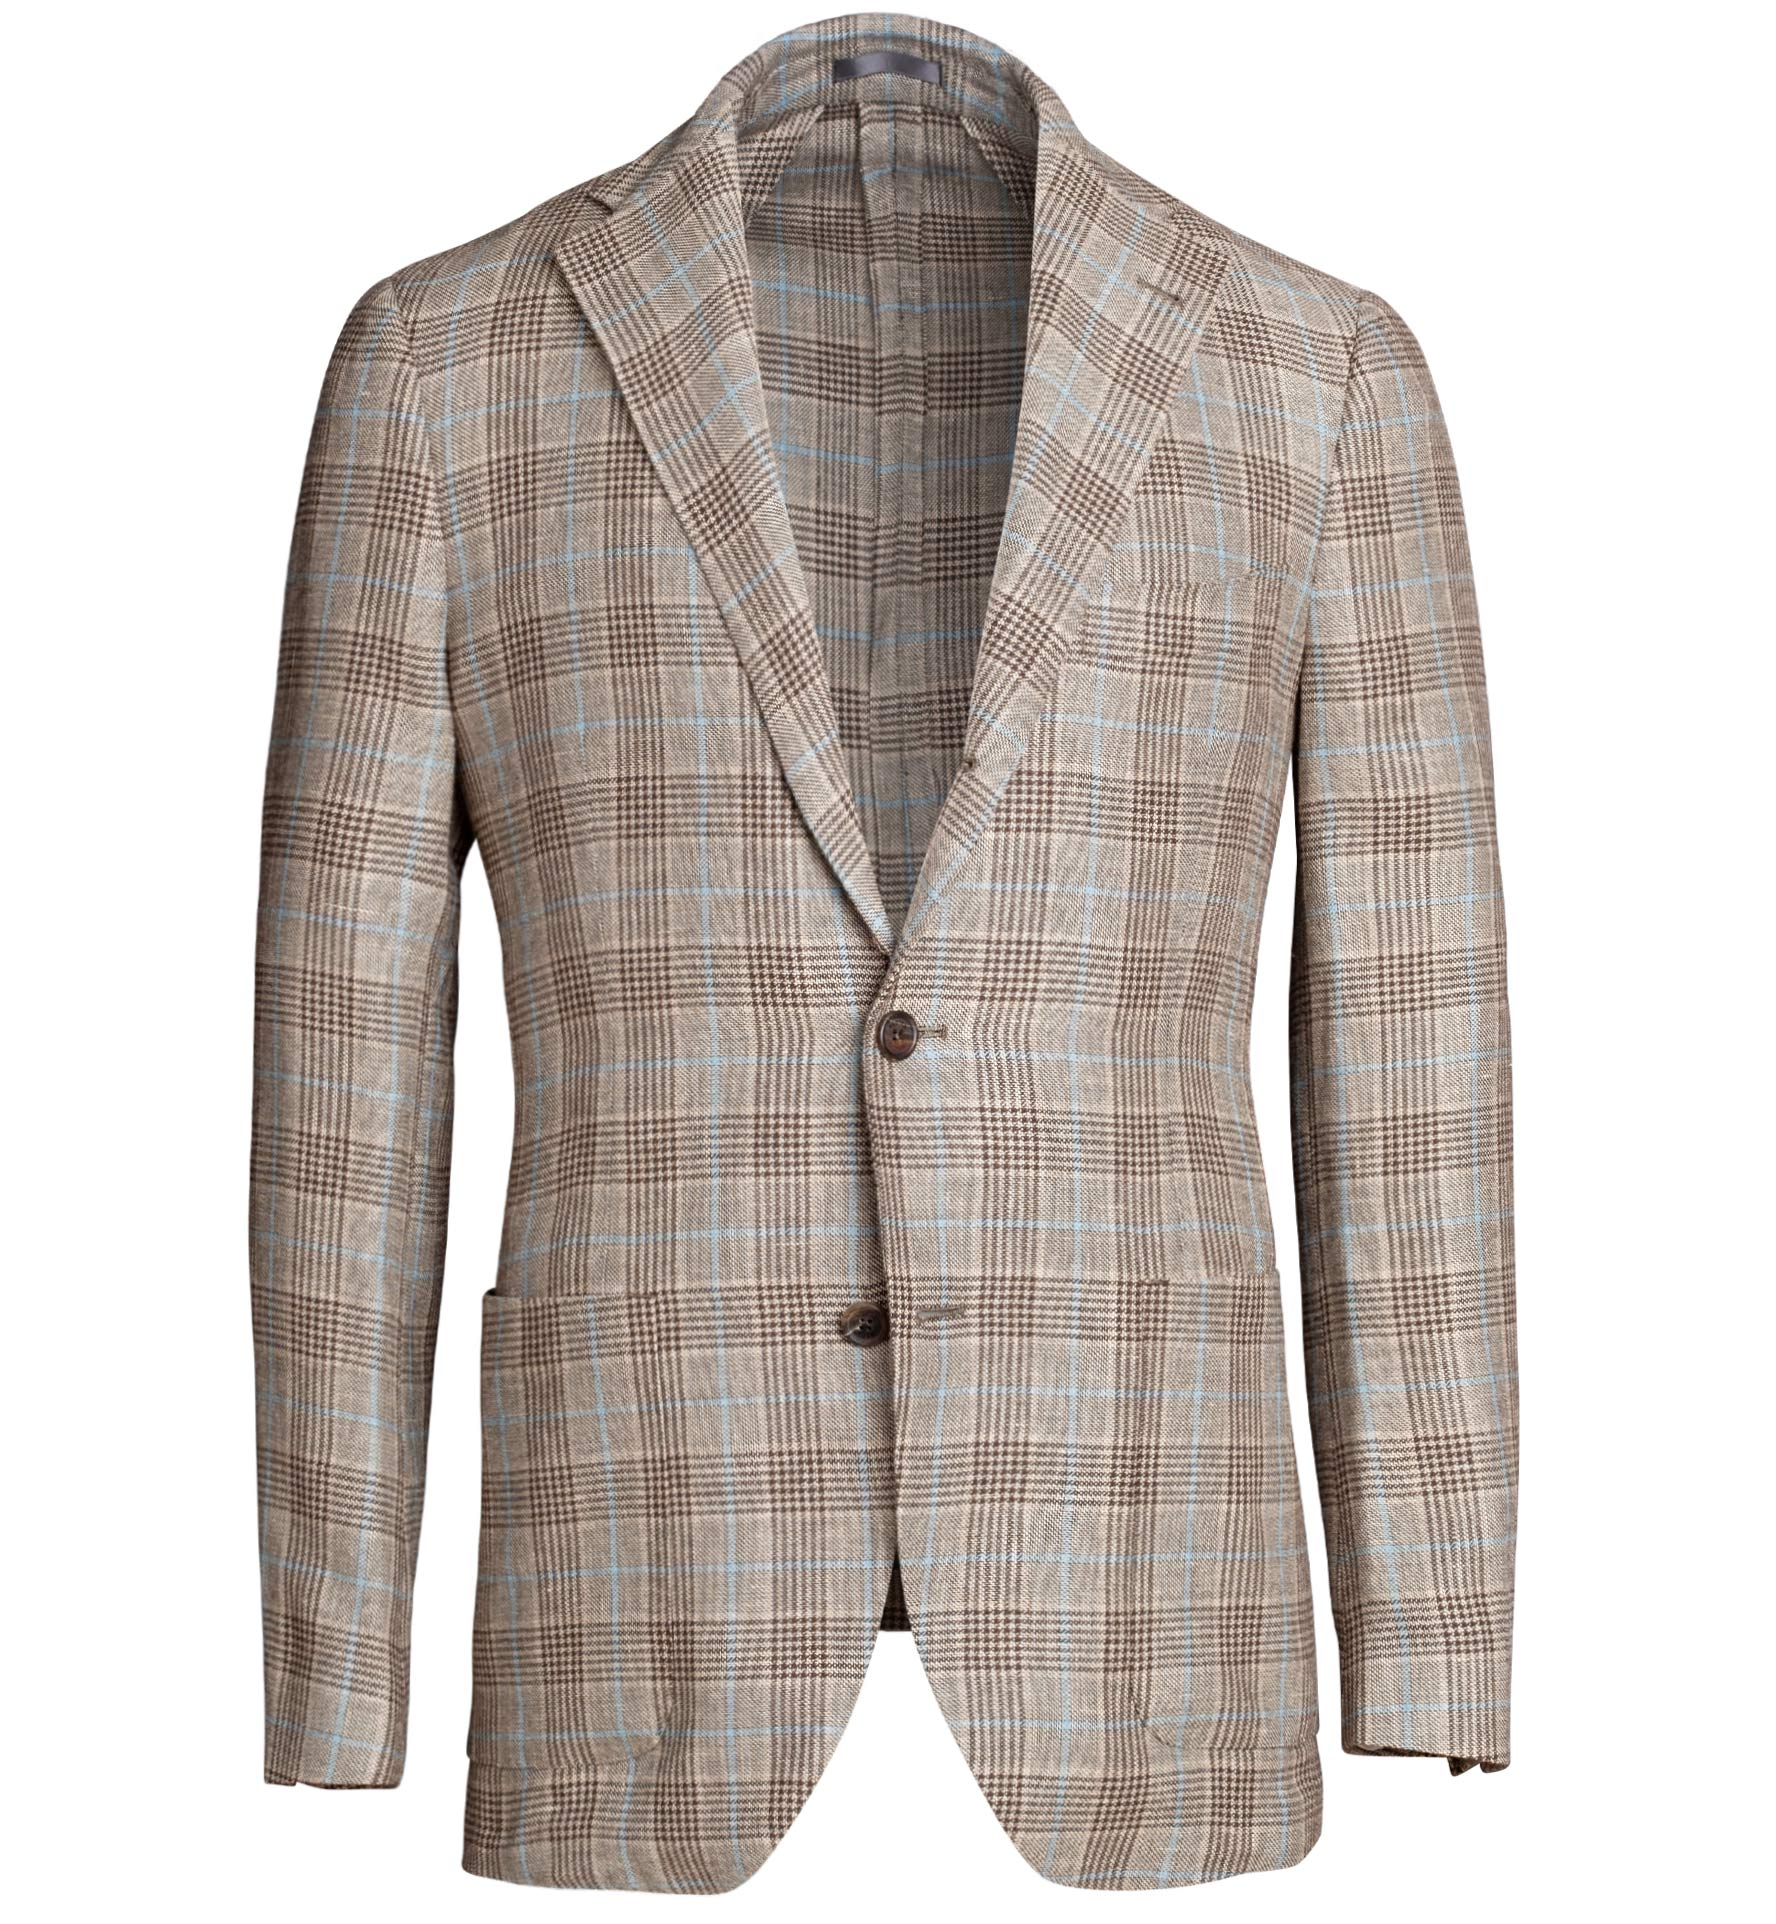 Zoom Image of Bedford Beige Prince of Wales Linen and Wool Jacket